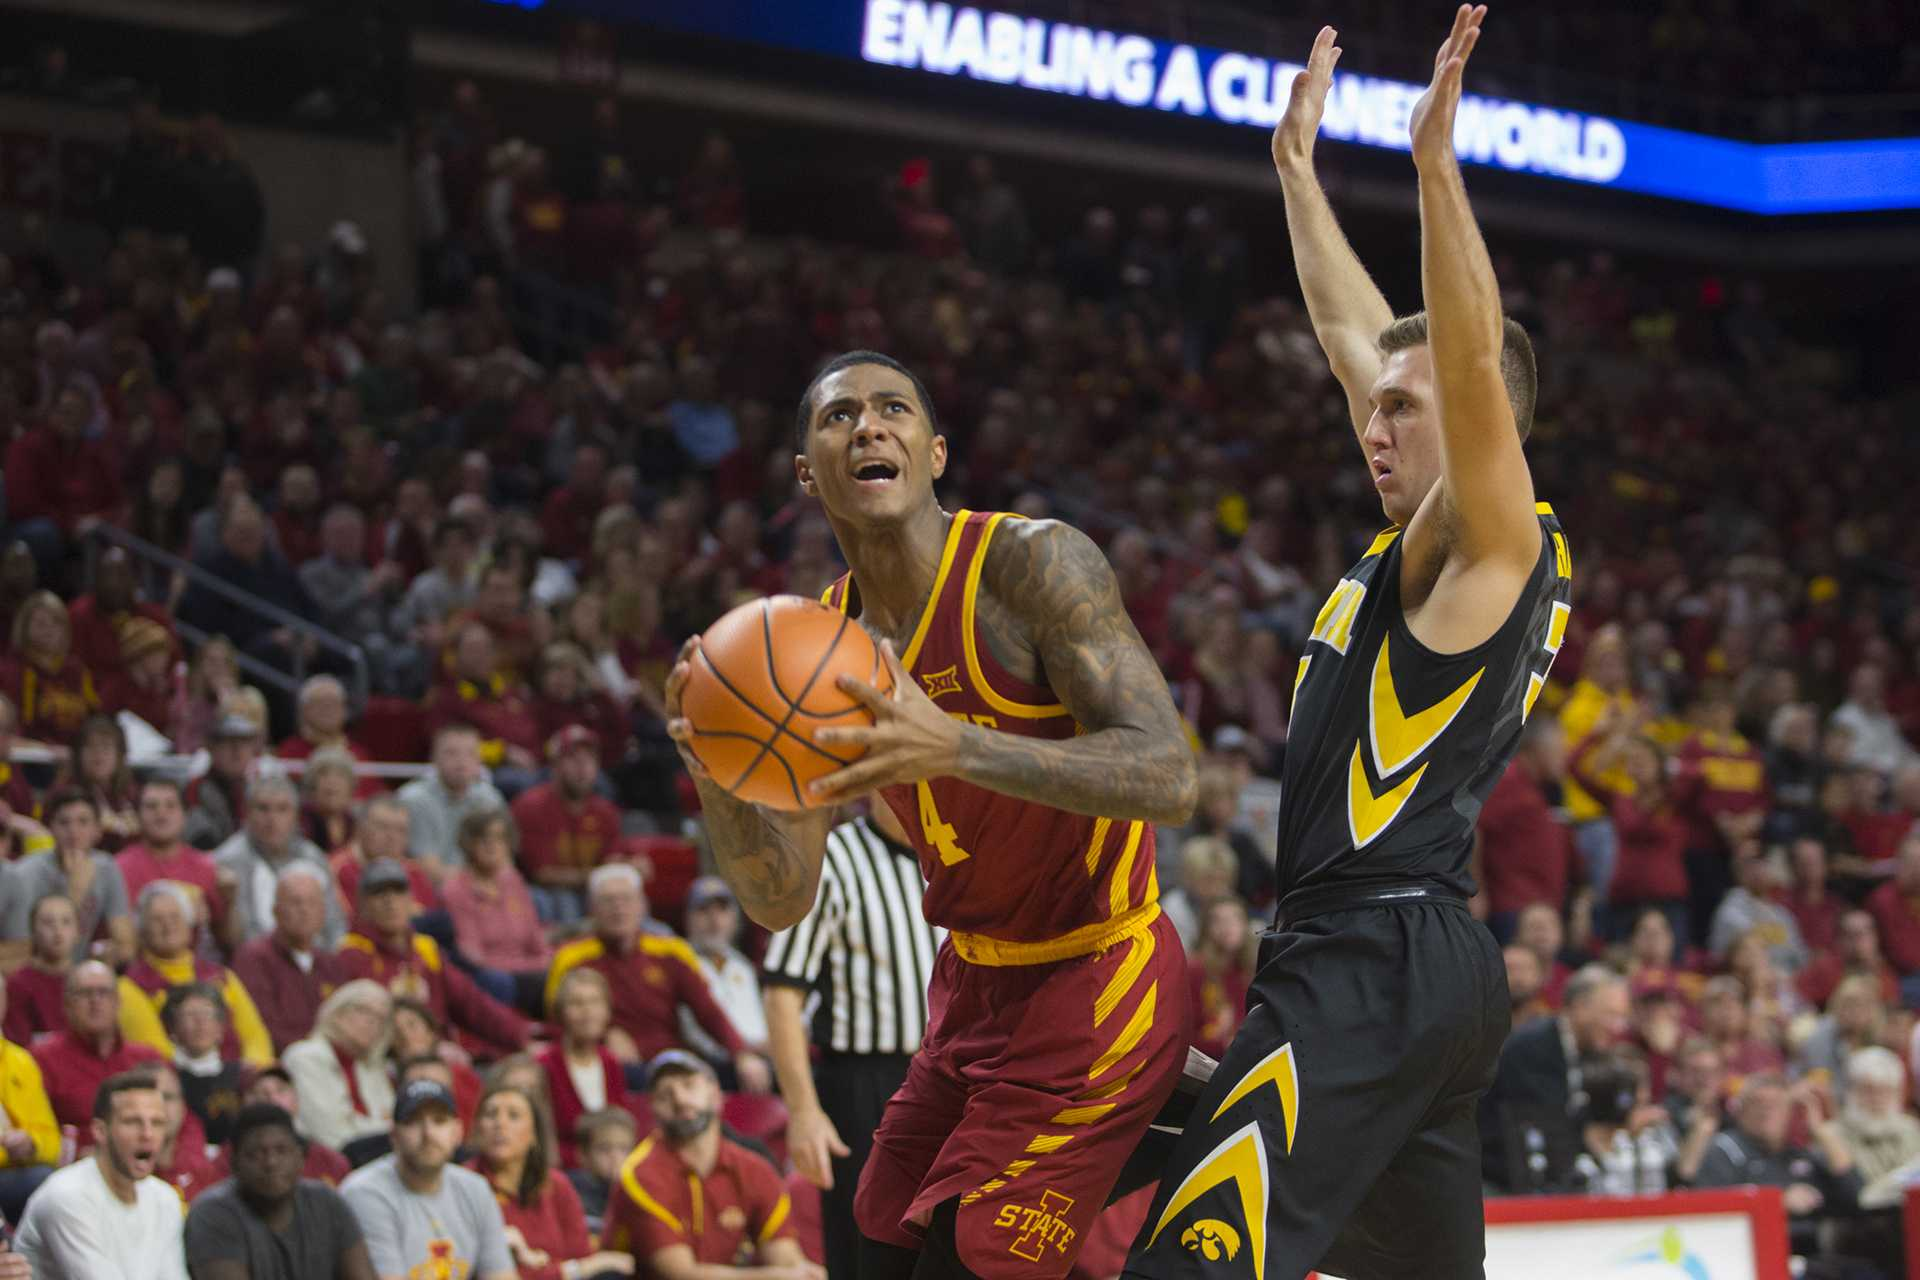 Iowa's Jordan Bohannon guards Iowa State's Donovan Jackson during the Iowa Corn CyHawk Series men's basketball game at Hilton Coliseum in Ames on Thursday, Dec. 7, 2017. The Cyclones defeated the Hawkeyes, 84-78. (Lily Smith/The Daily Iowan)